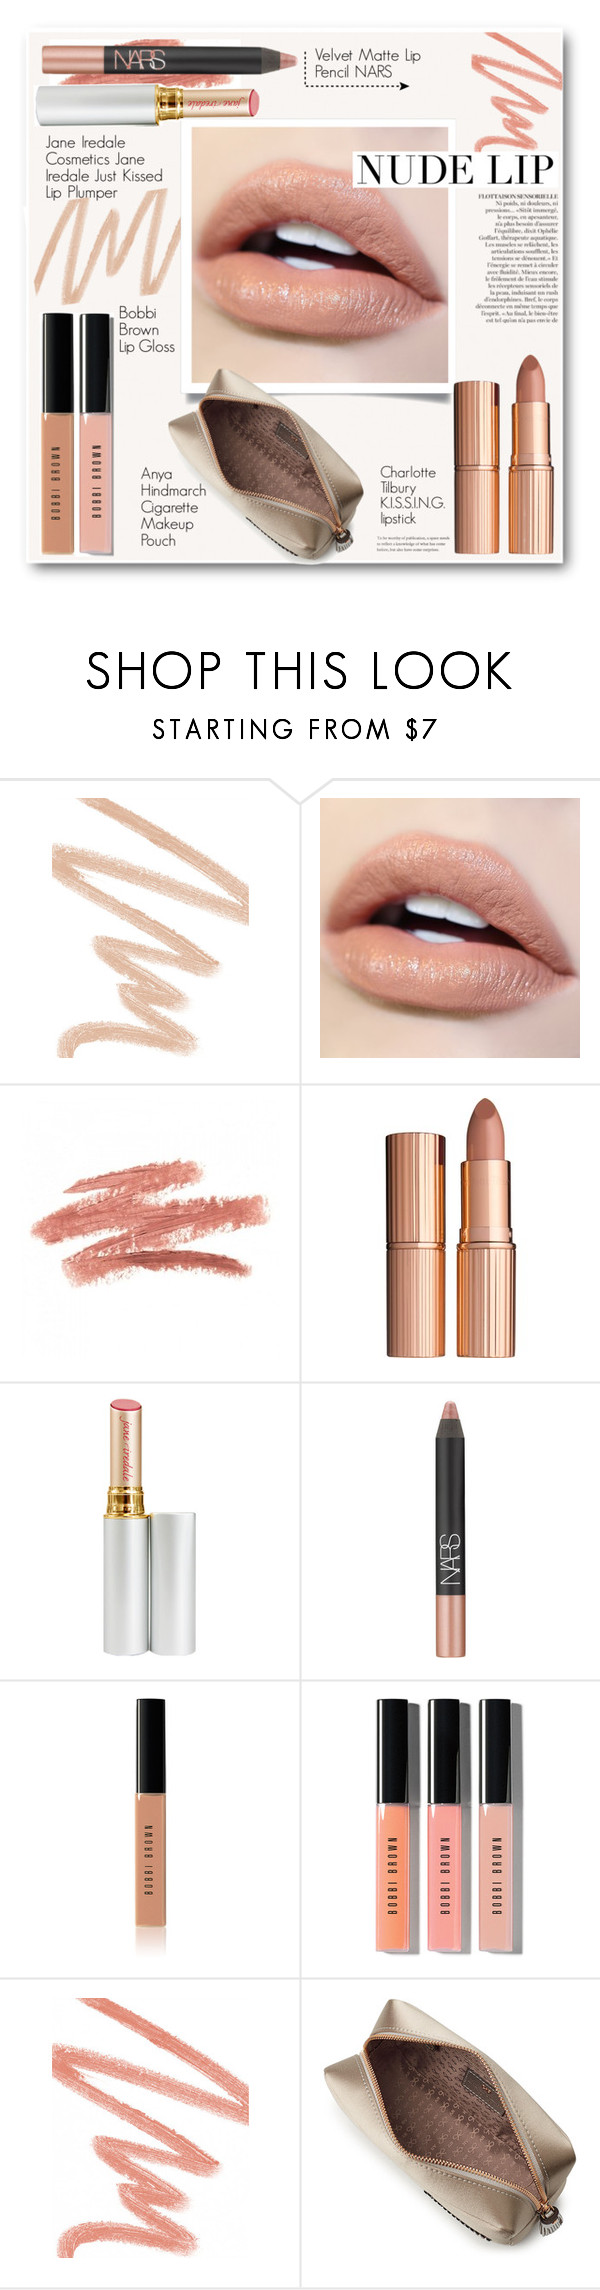 """""""Nude Lip"""" by annna-136 ❤ liked on Polyvore featuring beauty, NARS Cosmetics, Anja, Charlotte Tilbury, Bobbi Brown Cosmetics, Givenchy, Anya Hindmarch and nudelip"""